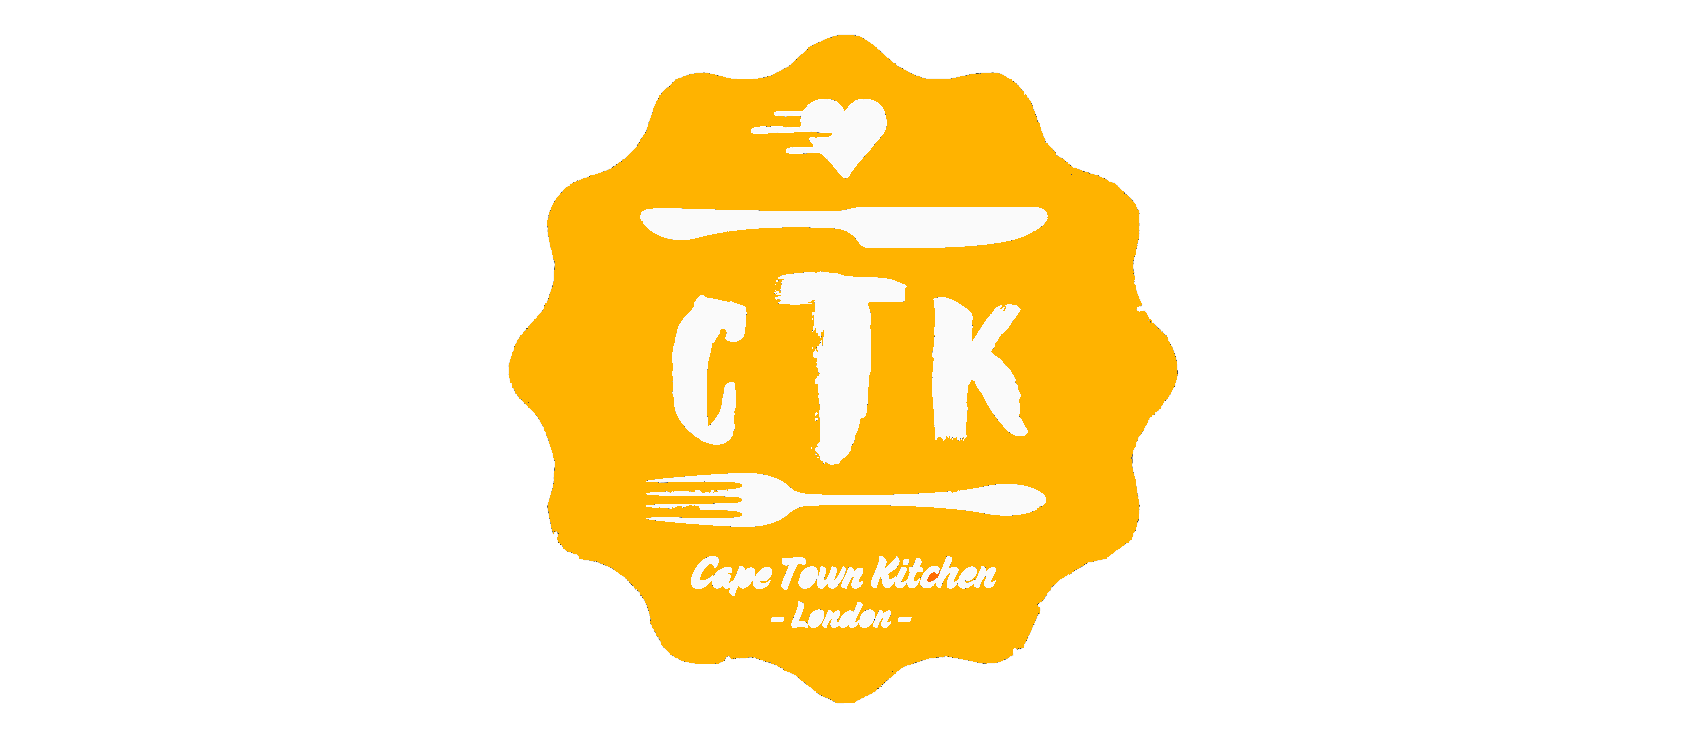 Cape town kitchen south. Grilling clipart spit braai